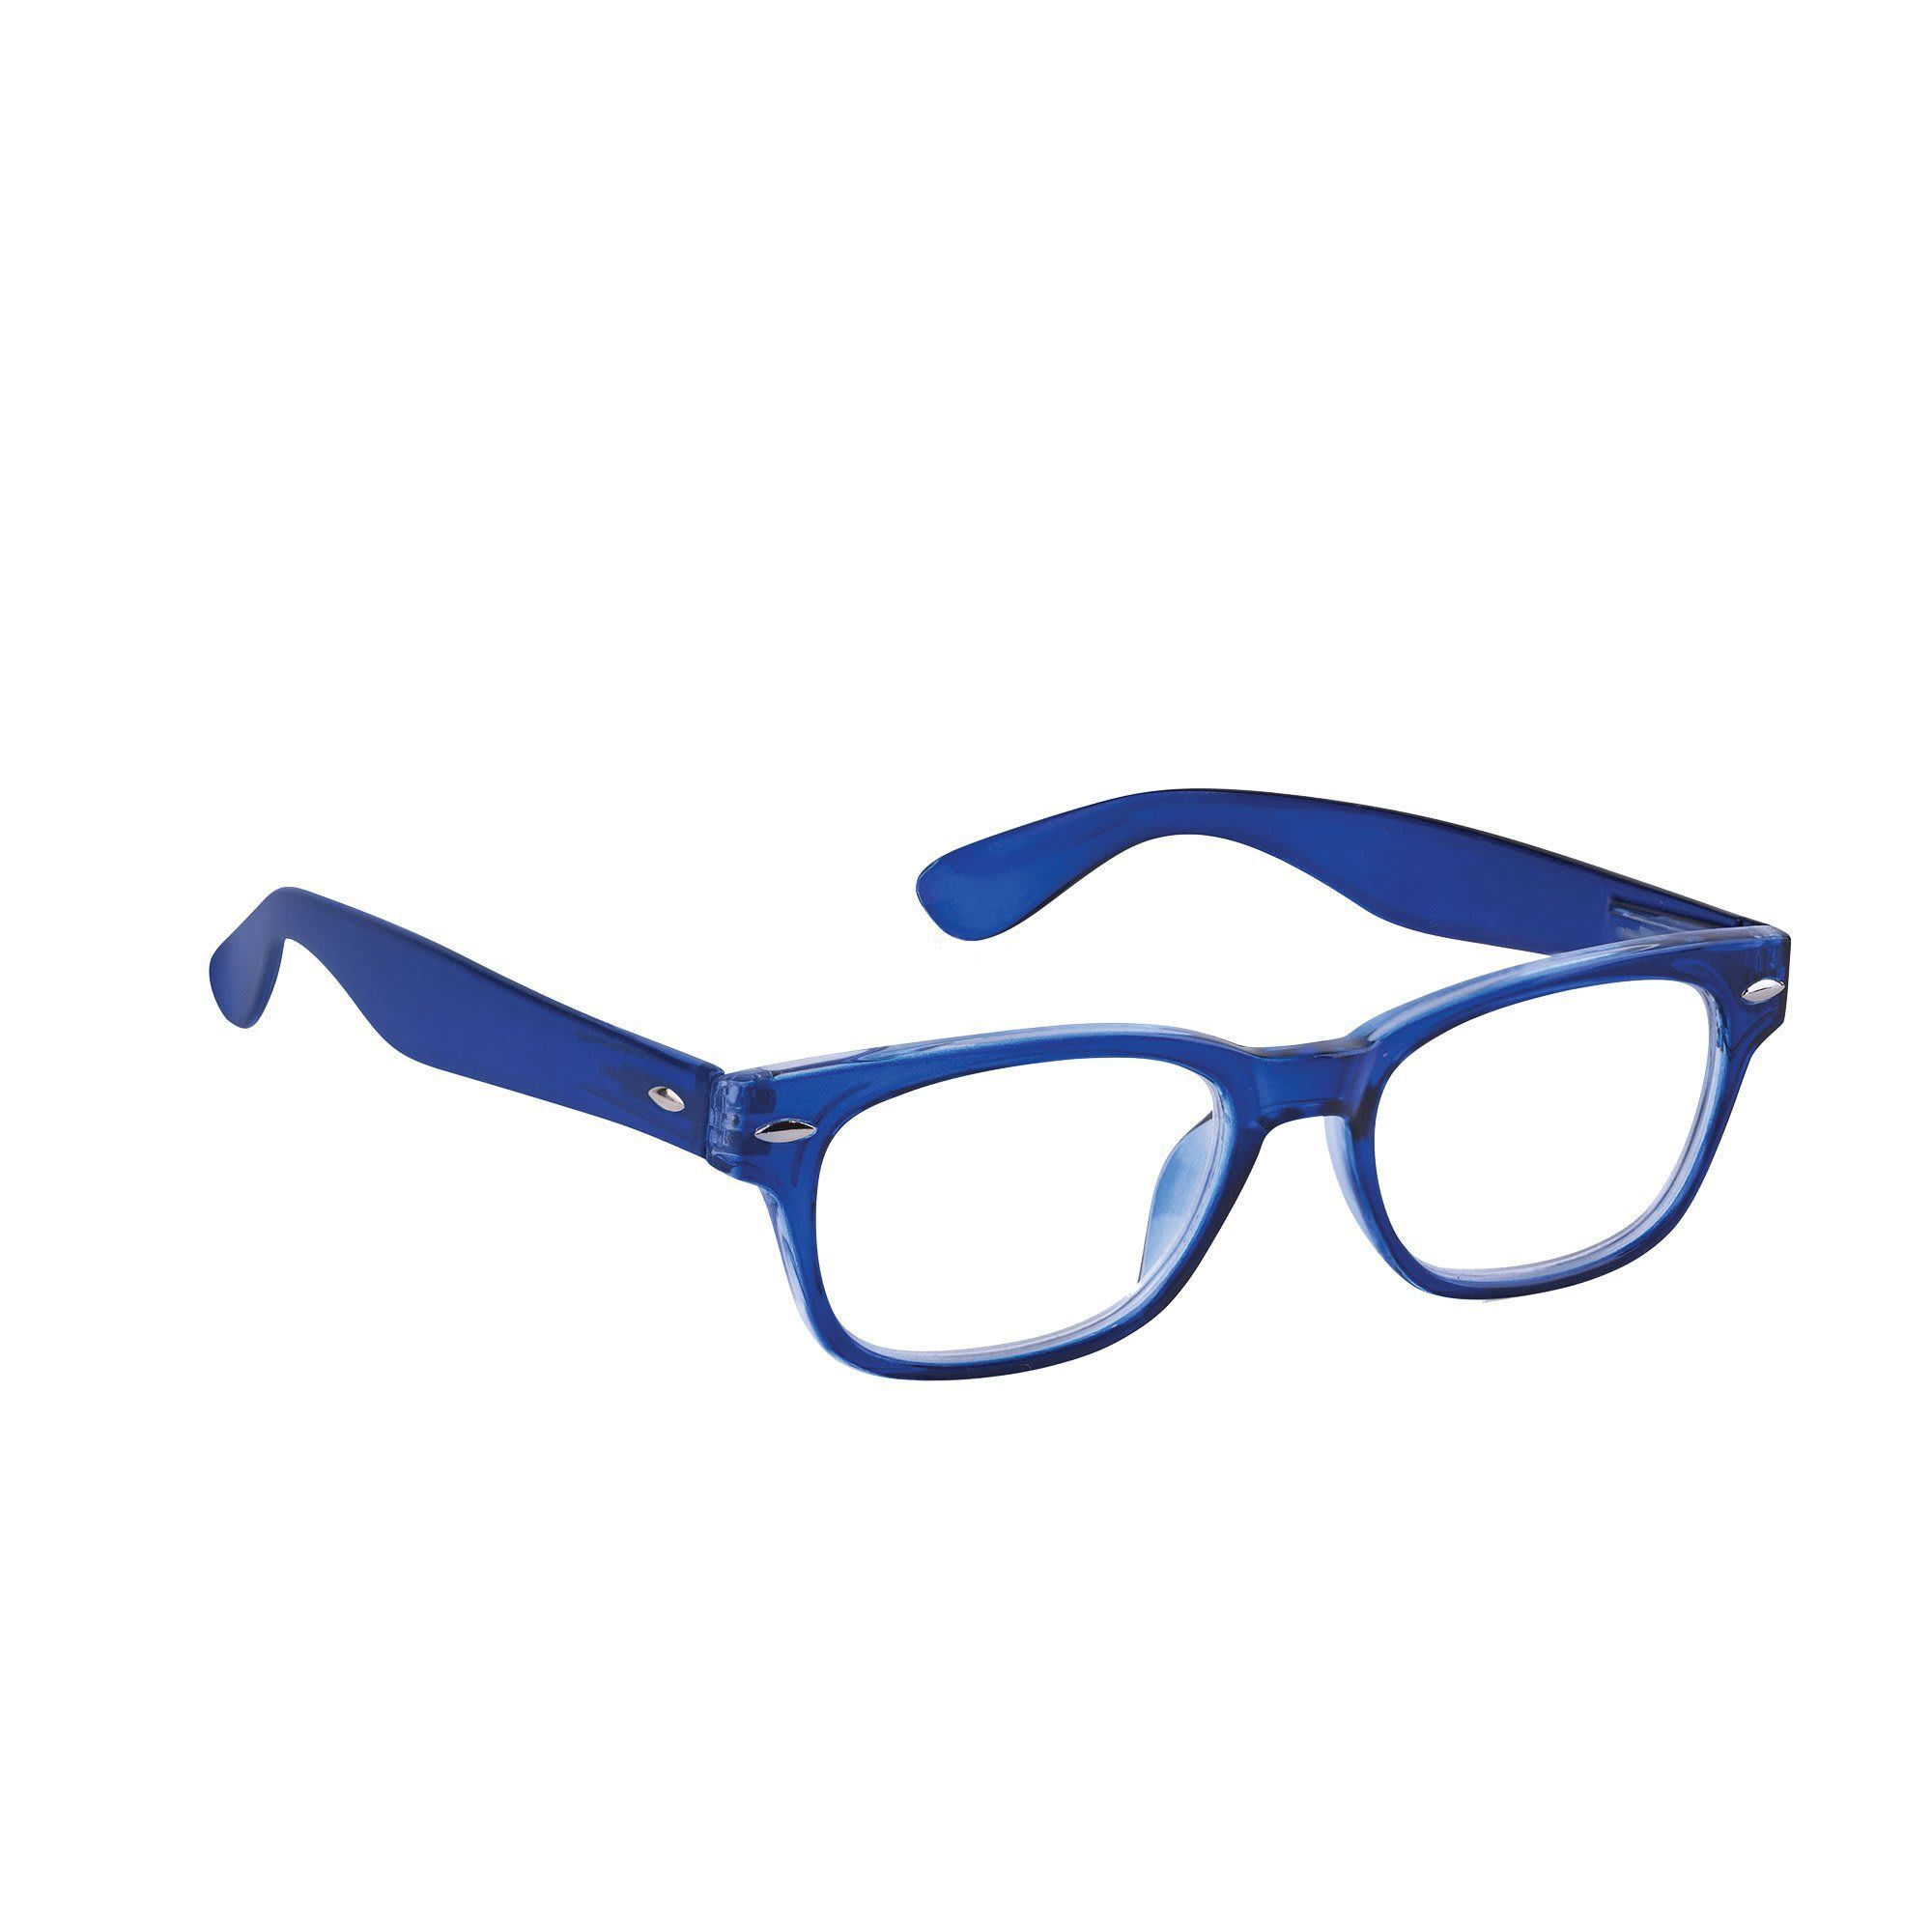 eb14010b4c7 Peeperspecs Simply Peepers Blue Reading Glasses